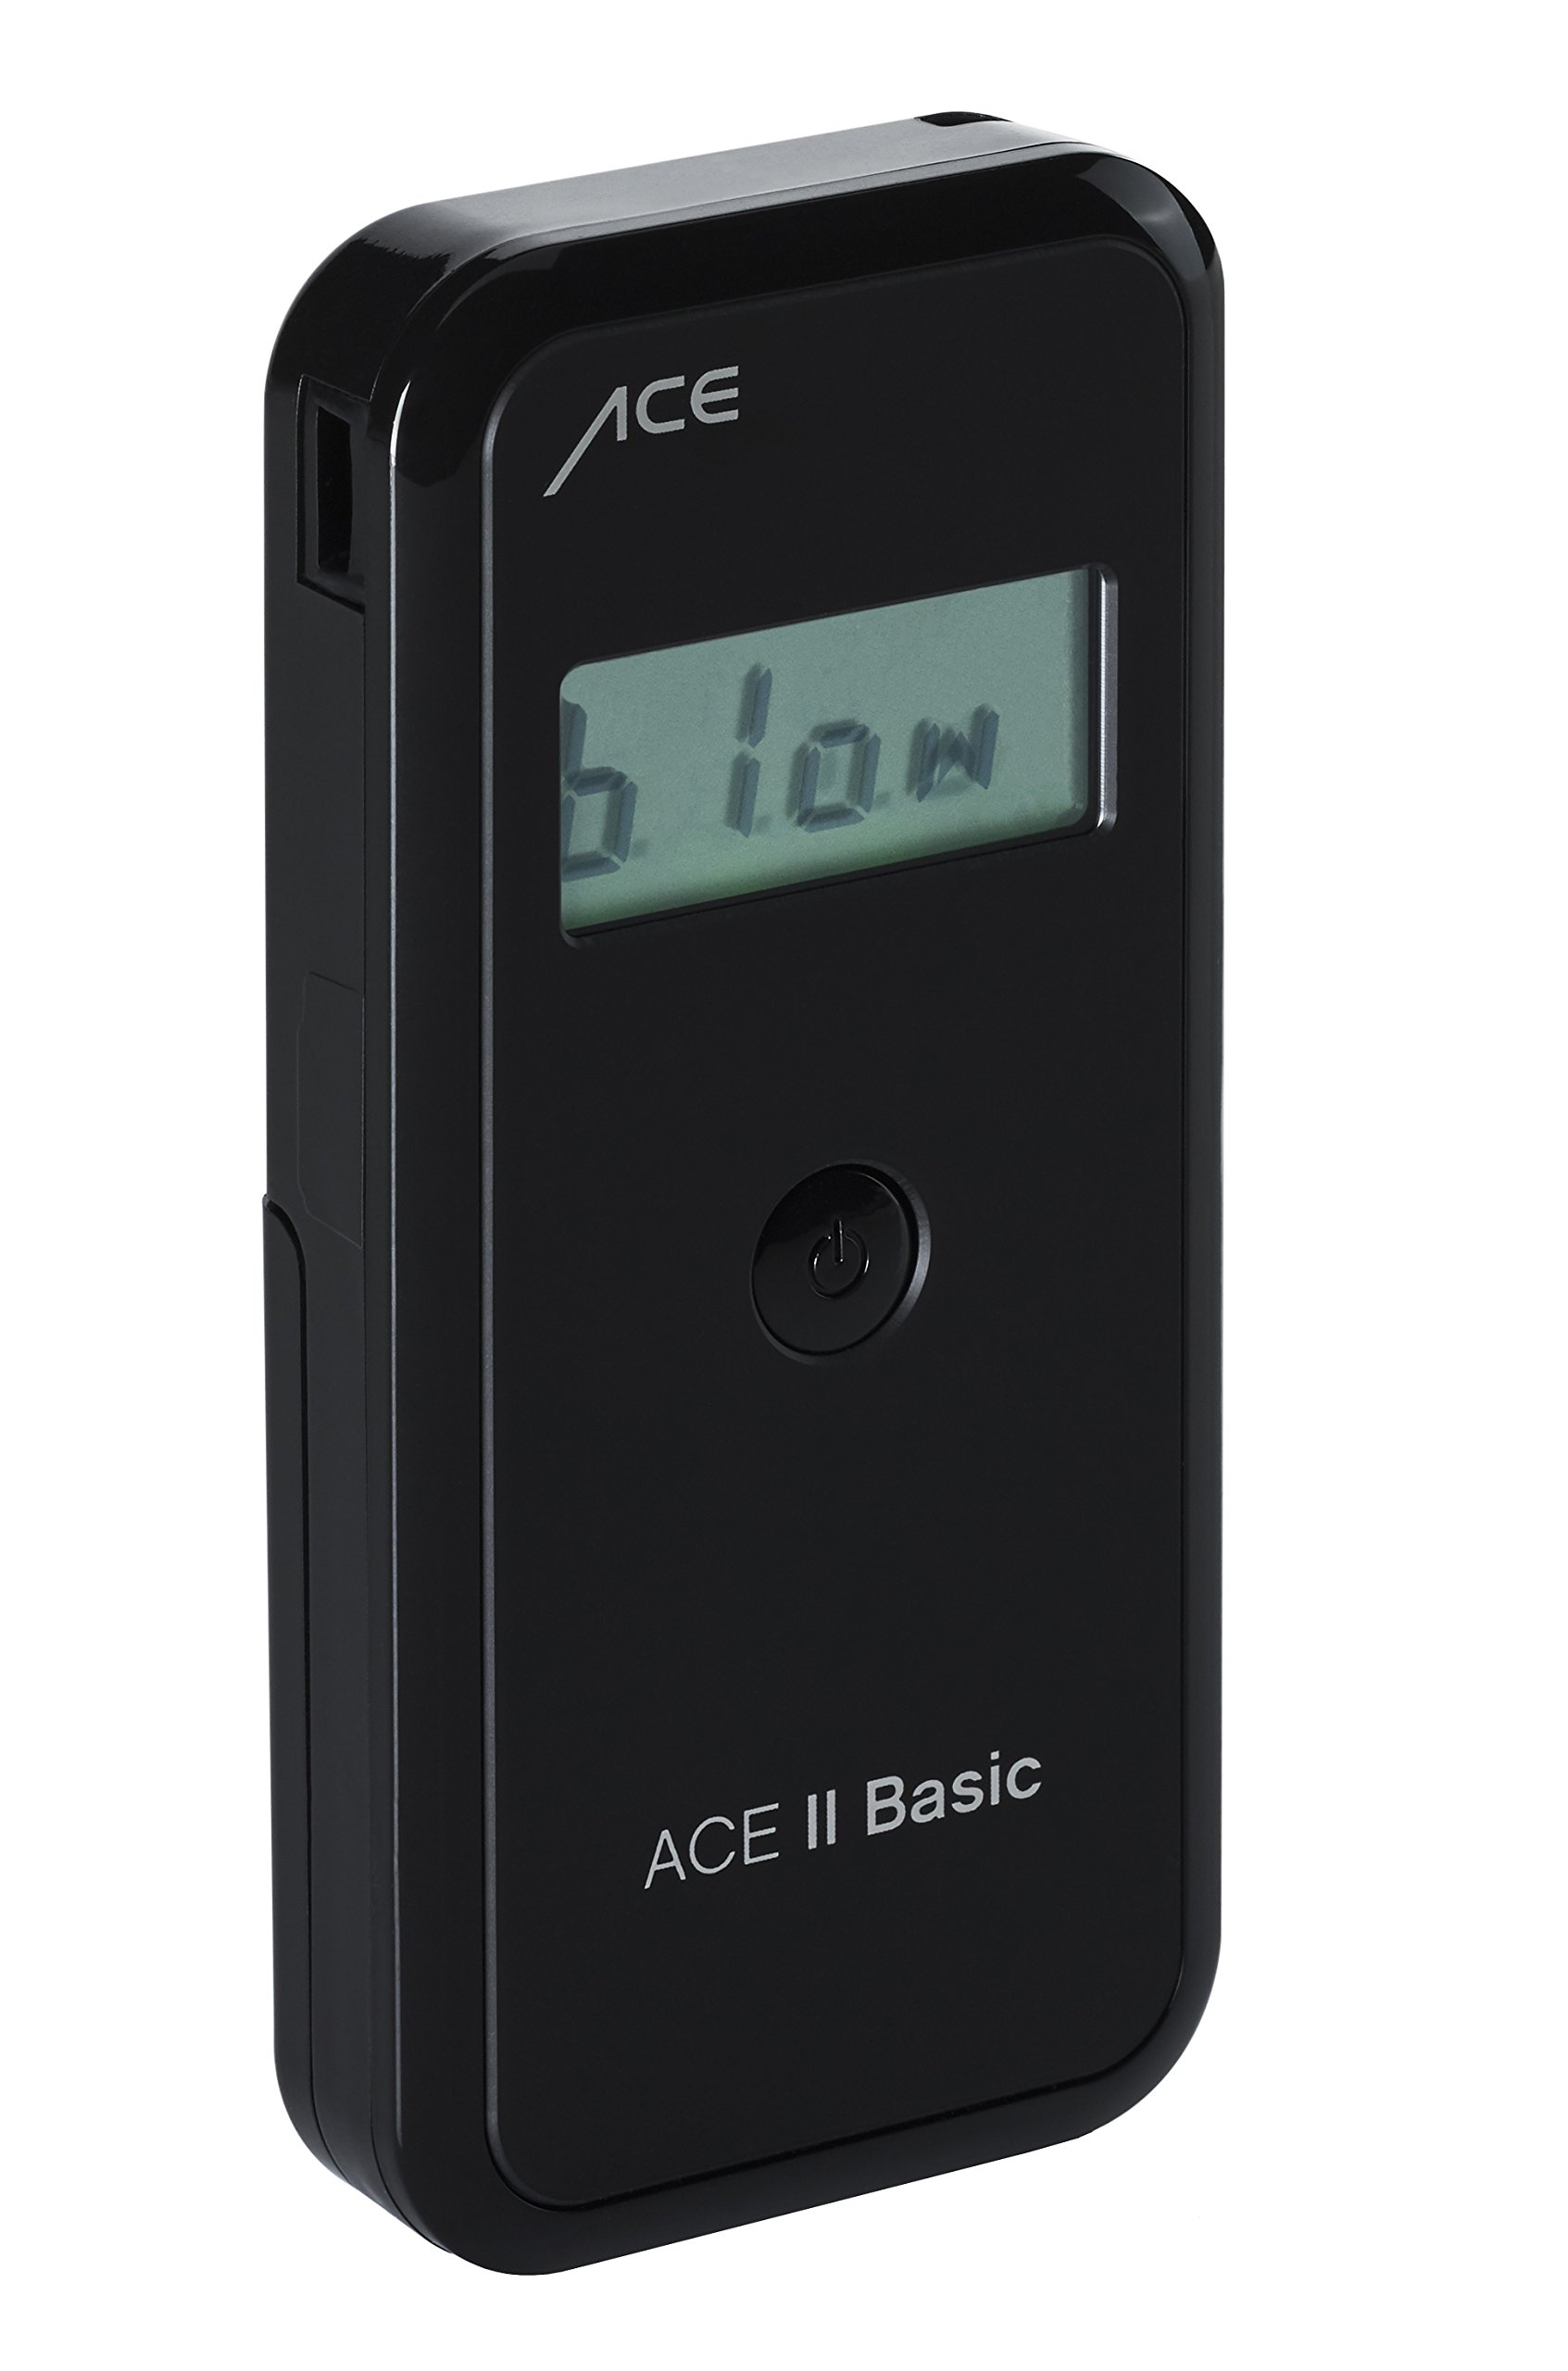 ACE II Basic Professional Digital Breathalyzer with Hard Case - DOT Tested Portable Breath Alcohol Tester